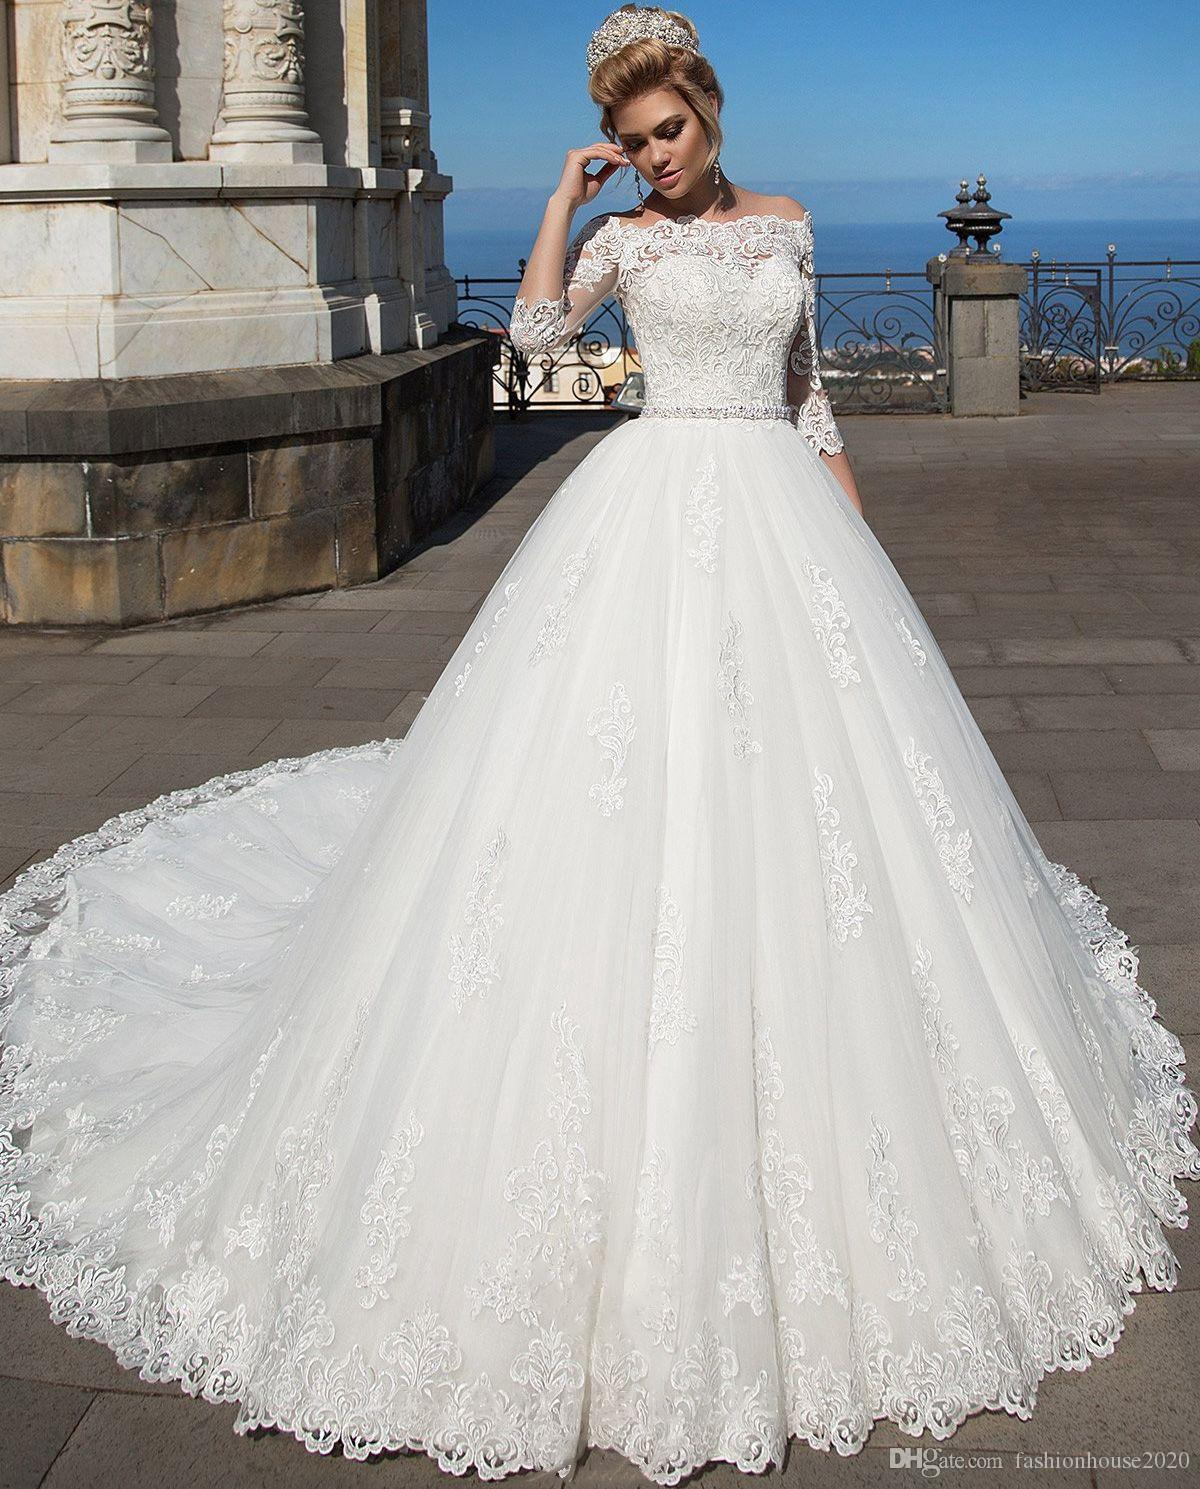 2018 Cheap Elegant White Lace Ball Gown Wedding Dresses With Sleeves Off The Shoulder Princess Plus Size Dress Bridal Gowns Custom: Unique Ball Gown Wedding Dresses At Reisefeber.org